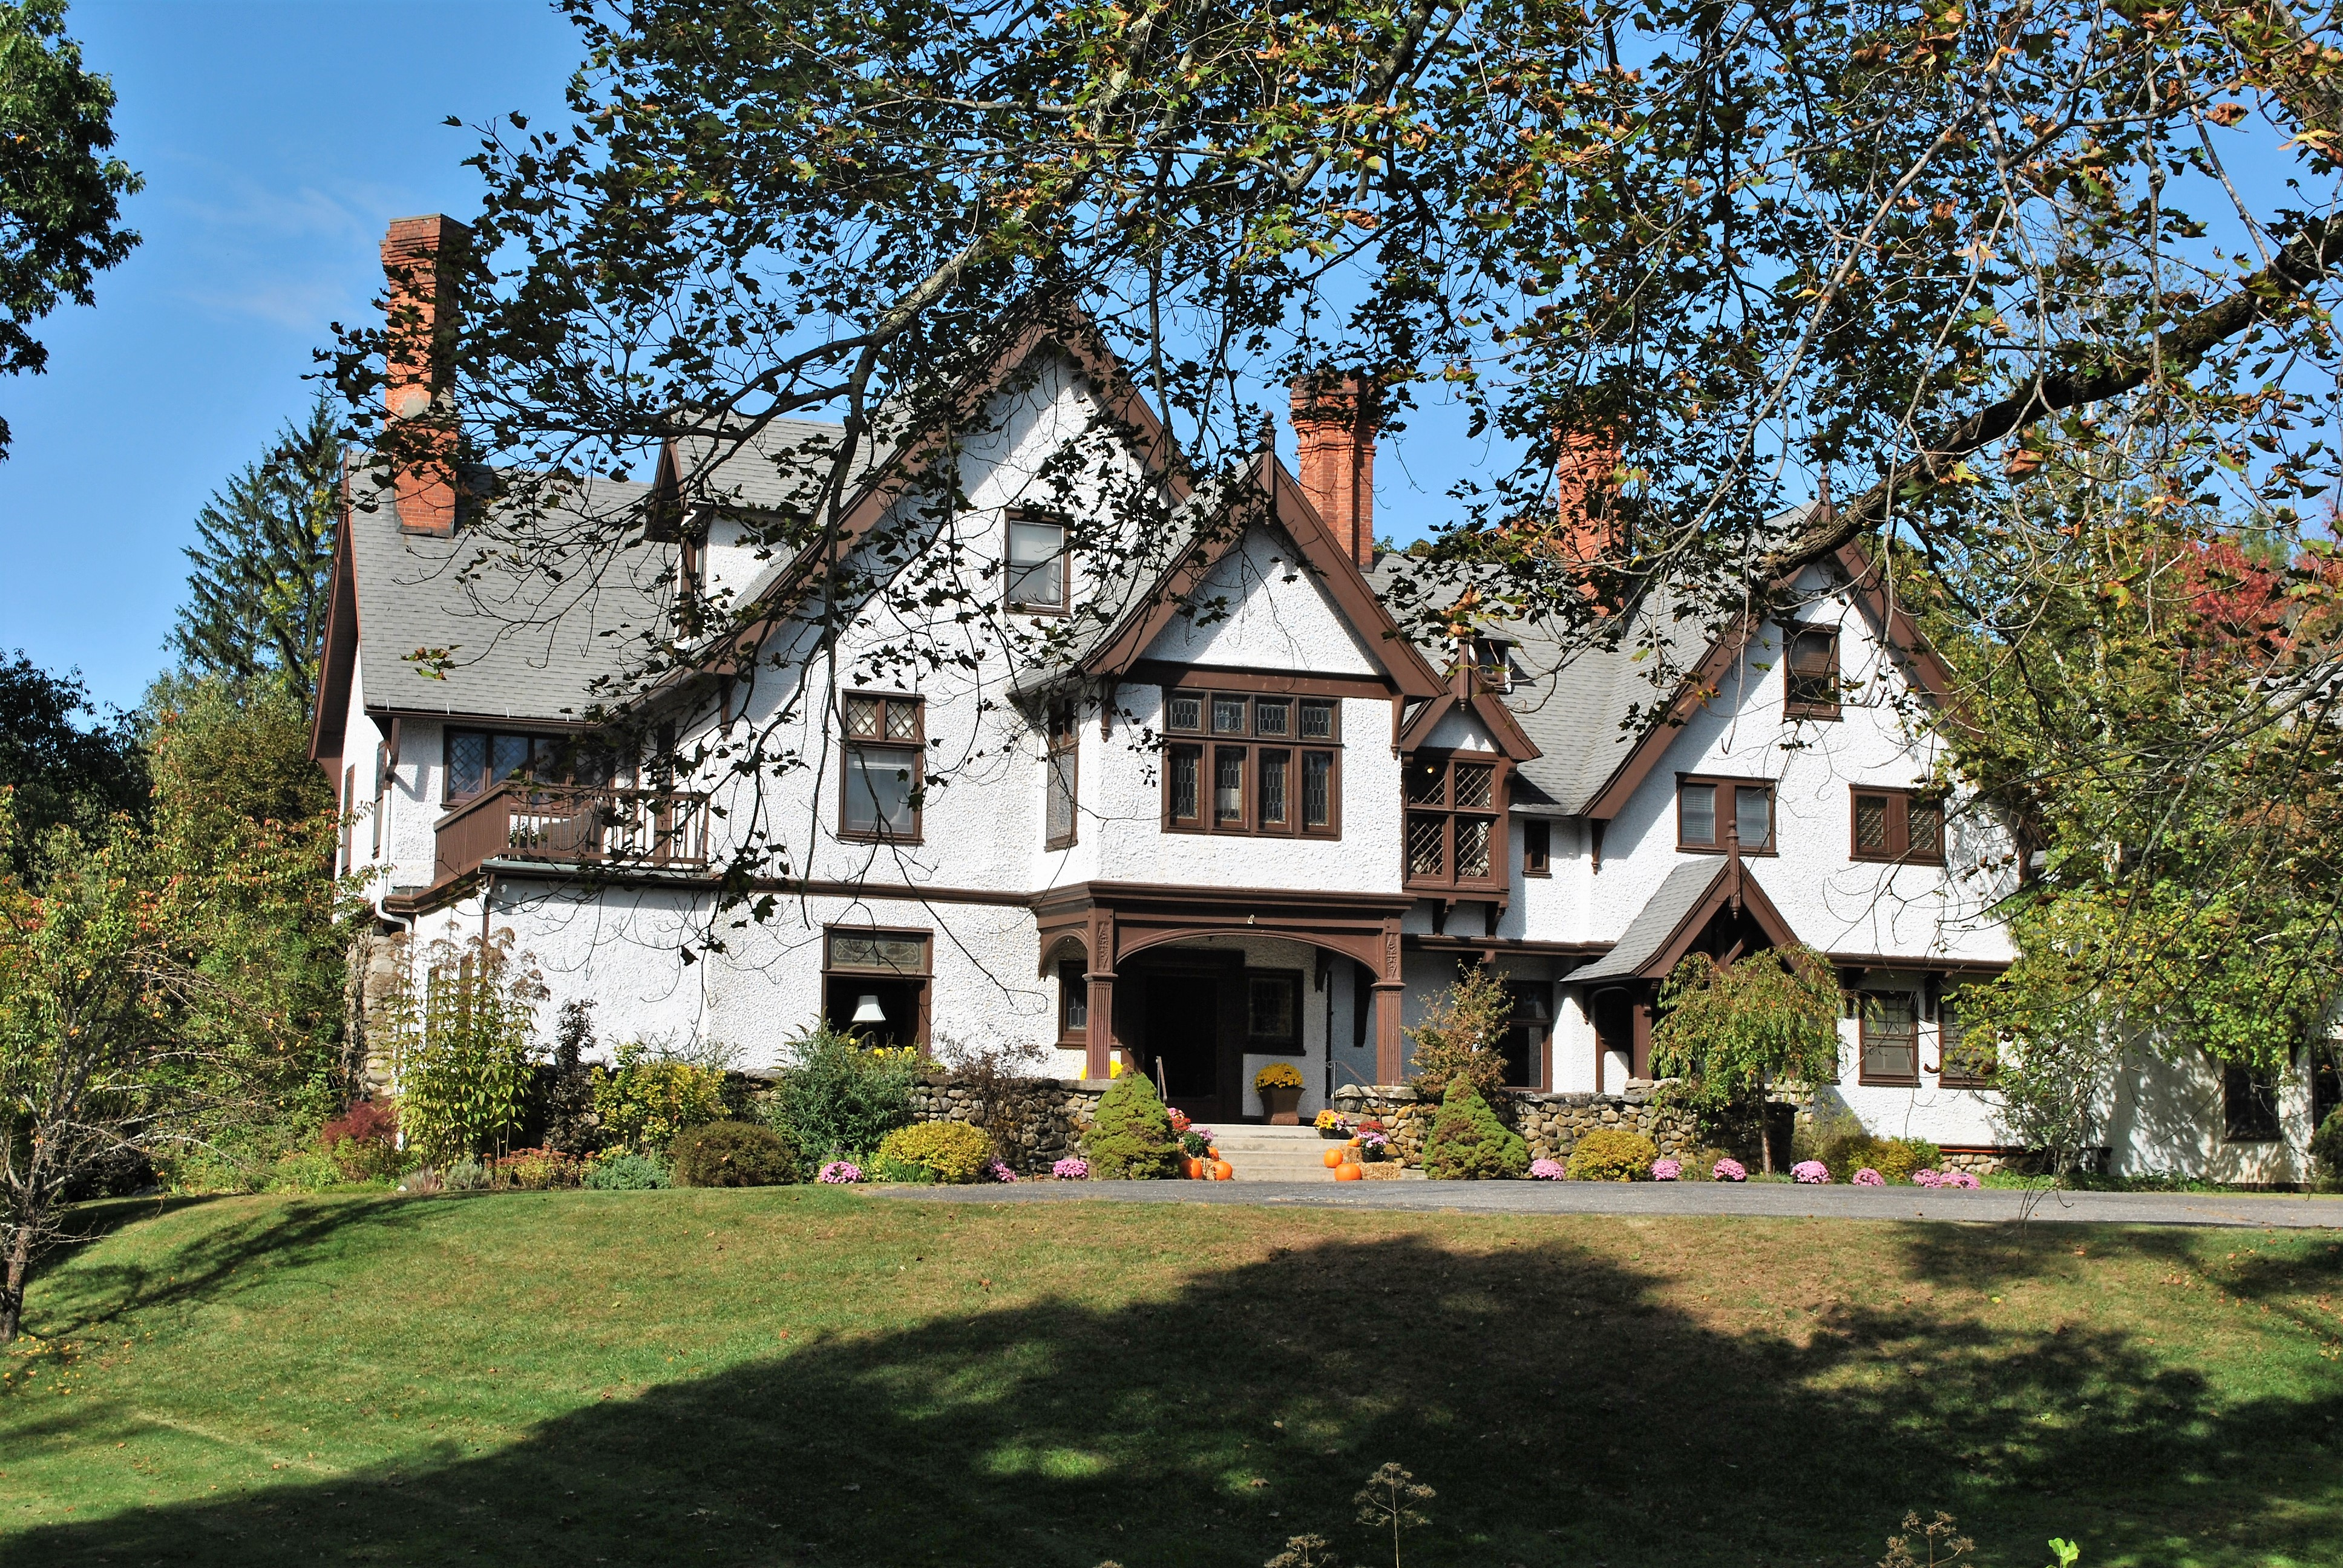 external image The_Alders_%28now_Manor_House%29%2C_a_Victorian_Tudor_mansion_in_Norfolk%2C_Connecticut.jpg